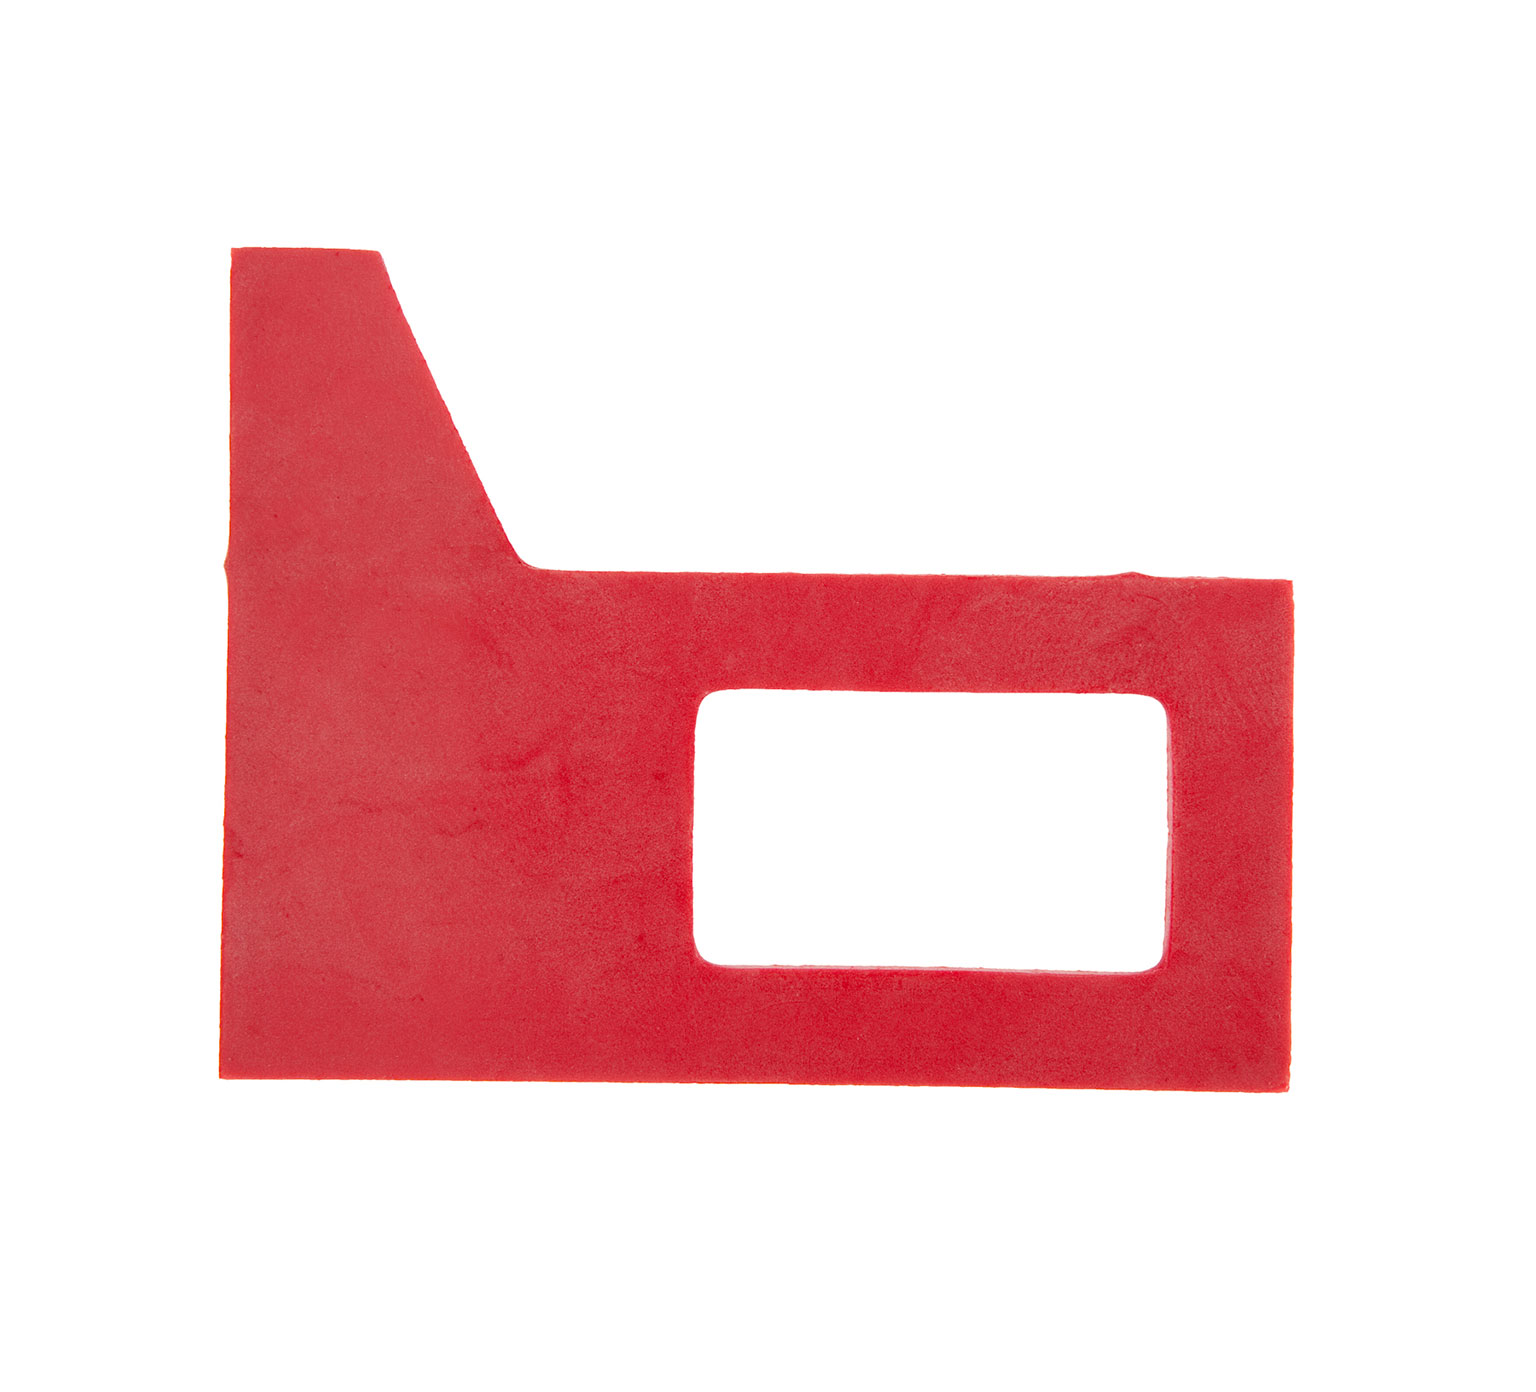 83874 Dura-Shield Red Rubber Squeegee Gasket alt 1